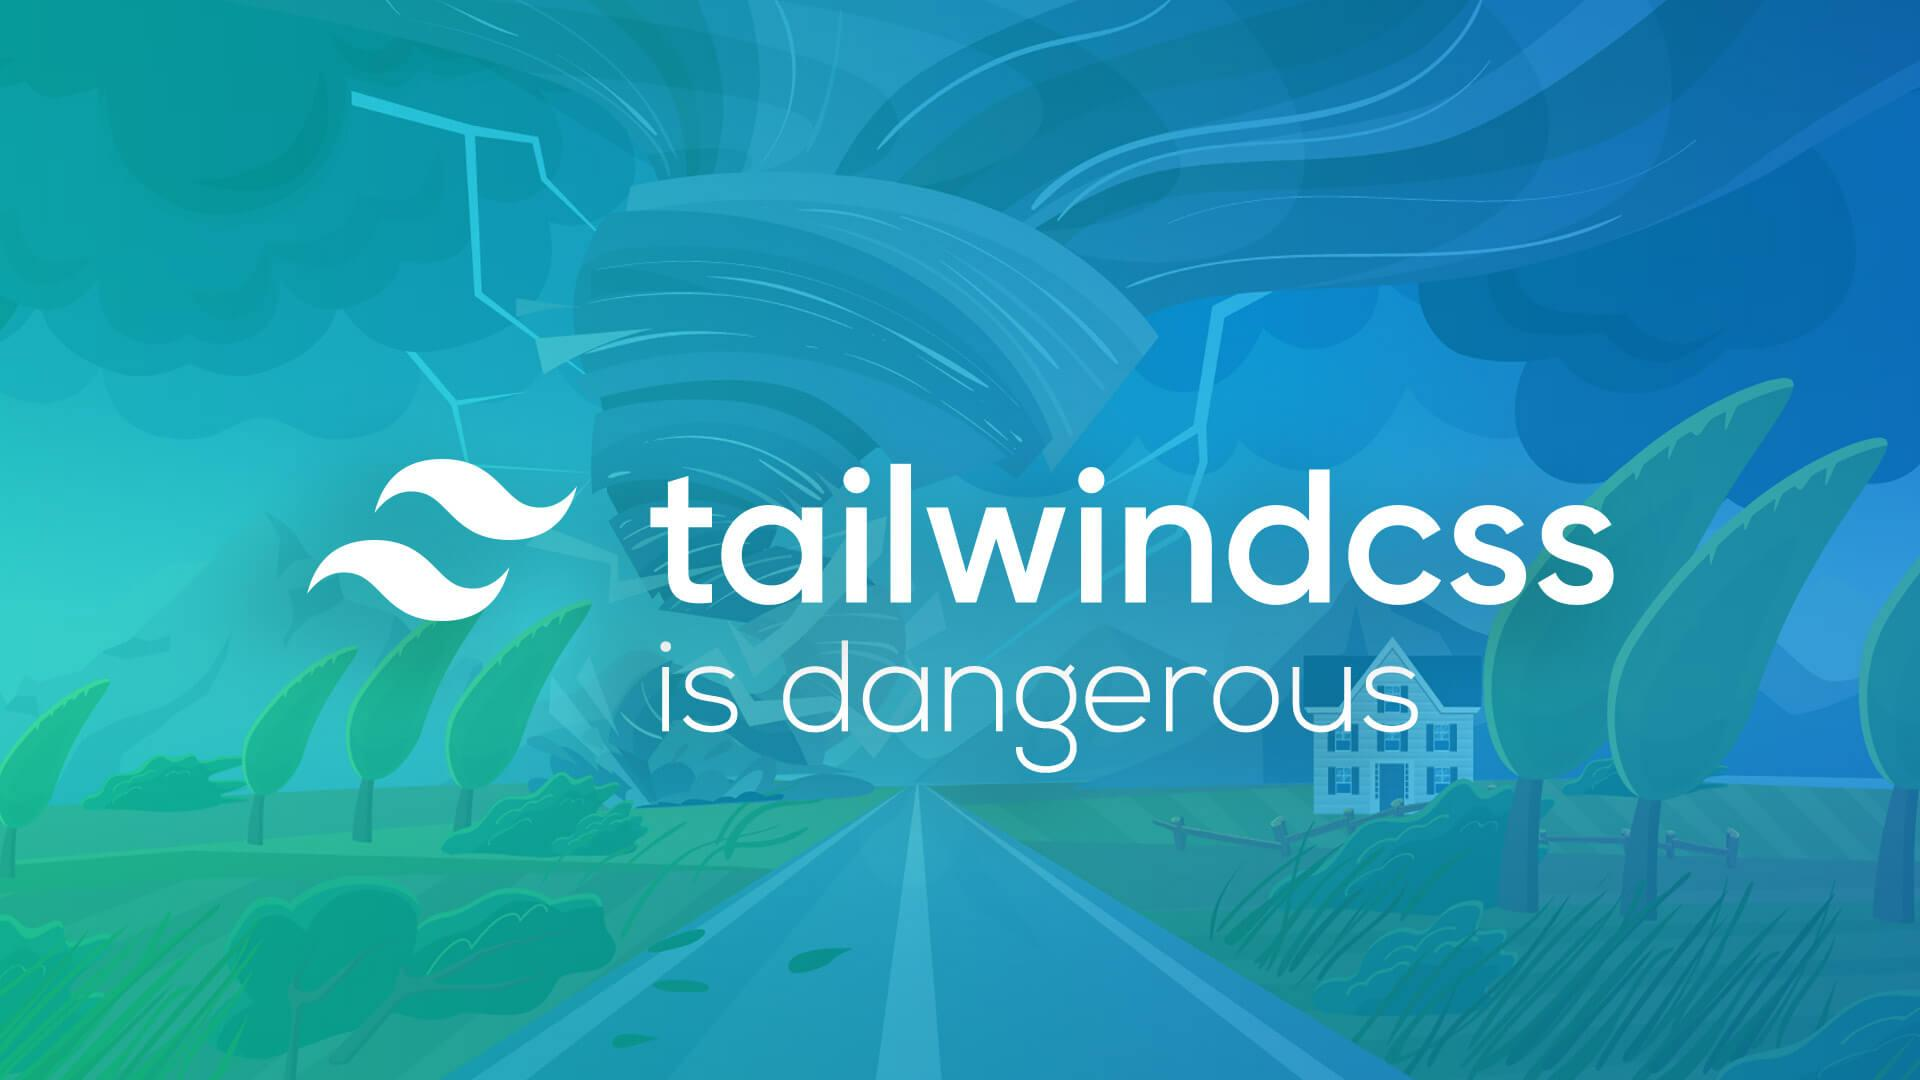 Why TailwindCSS is Dangerous